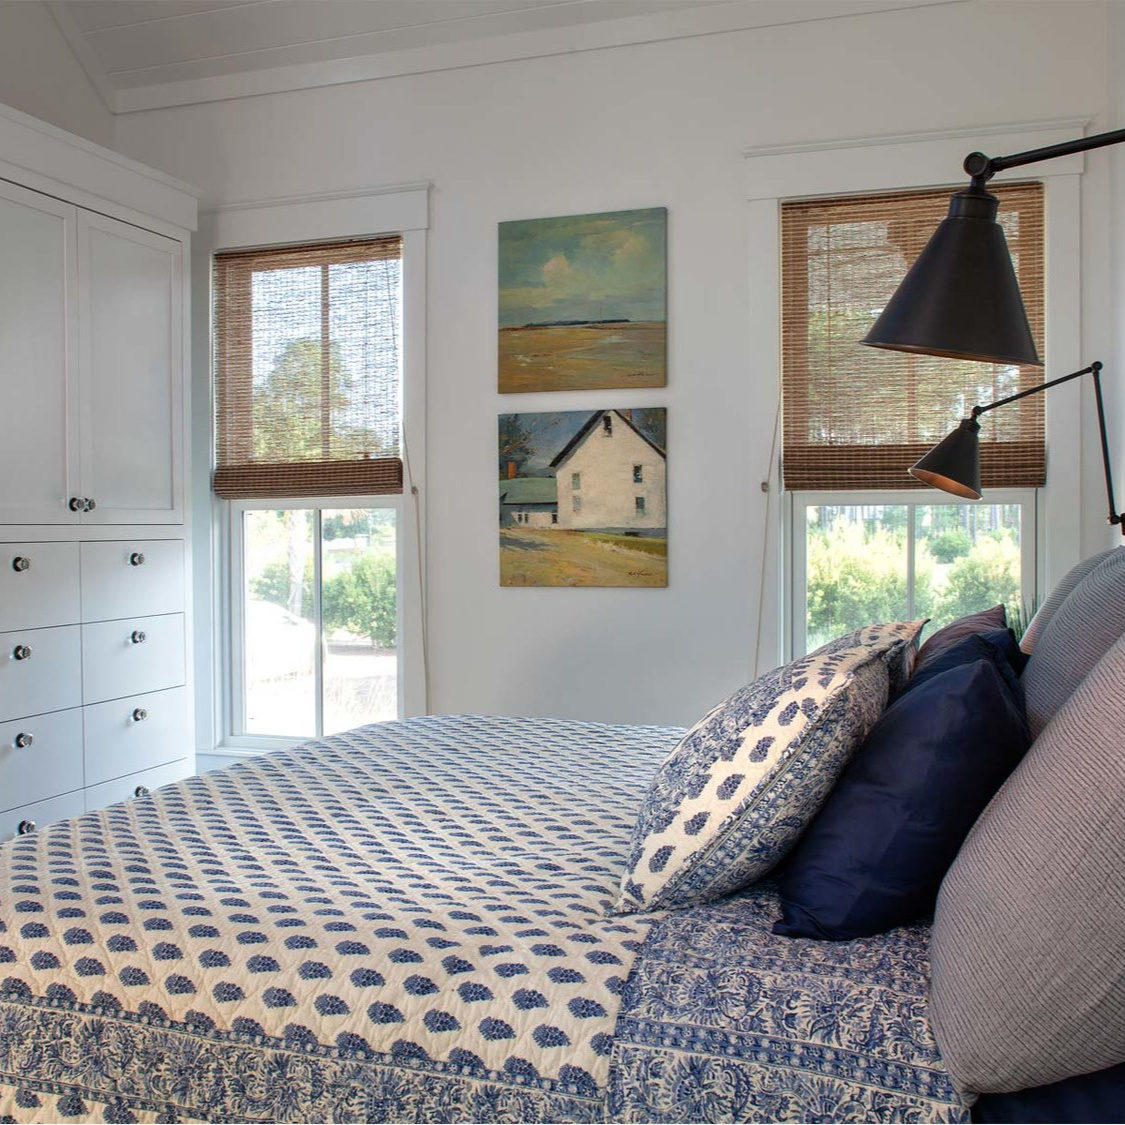 Coastal bedroom with blue paisley bedding, built-ins, and black swing arm task sconces - Lisa Furey. #coastalstyle #bedroomdesign #blueandwhite #coastalbedroom #interiordesign #cottagestyle